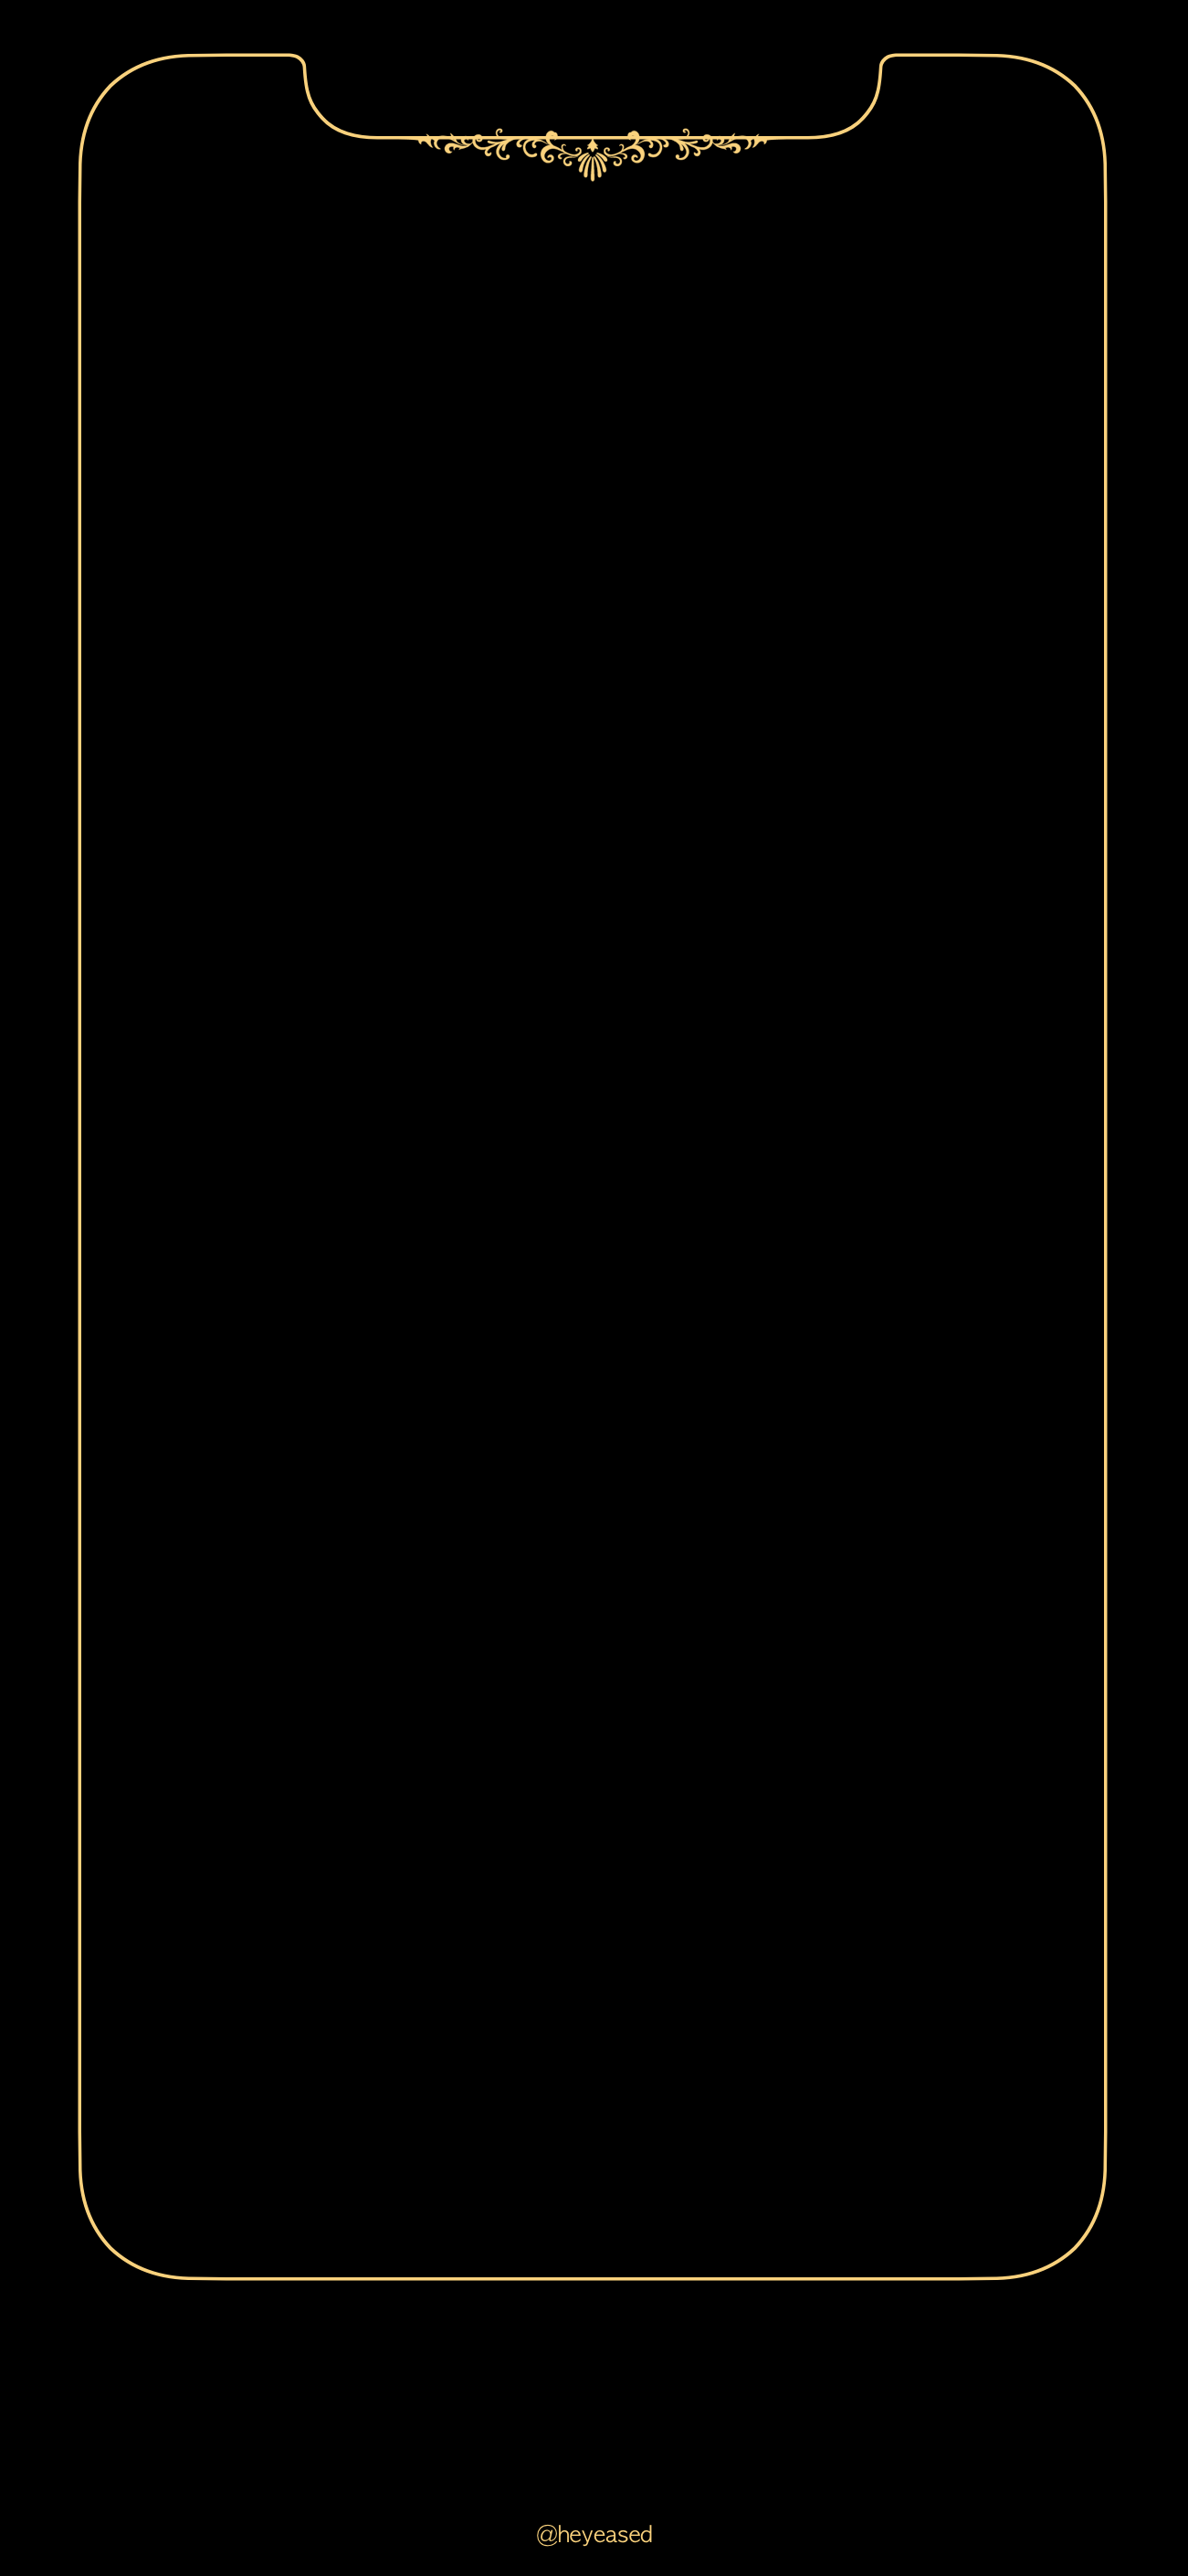 The X Floral Yellow Gold Png 1 301 2 820 Piksel Black Wallpaper Iphone Apple Wallpaper Iphone Pretty Wallpaper Iphone